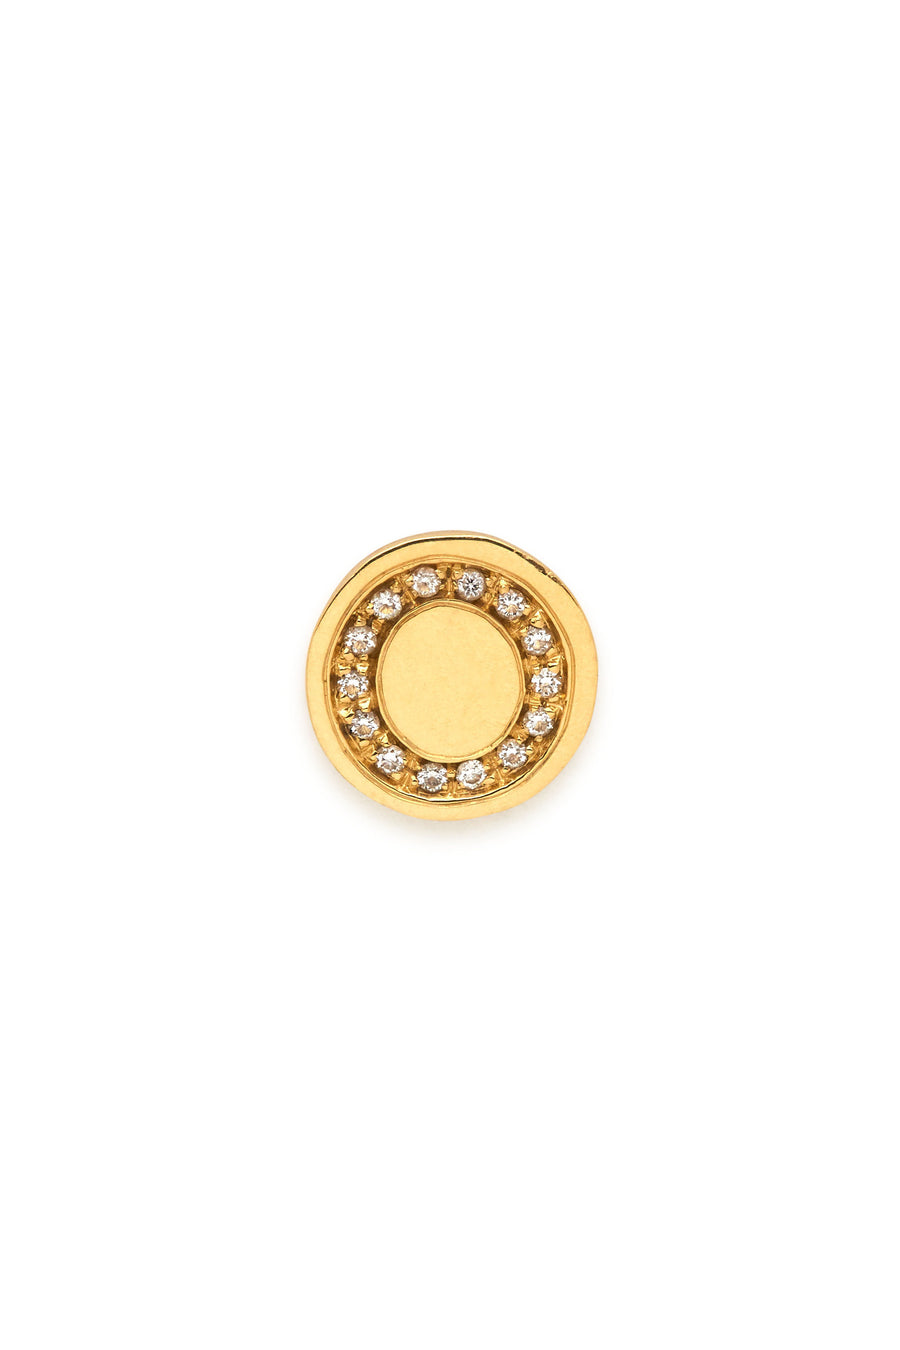 18K Gold & Diamonds Initial Magnetic Charm - O